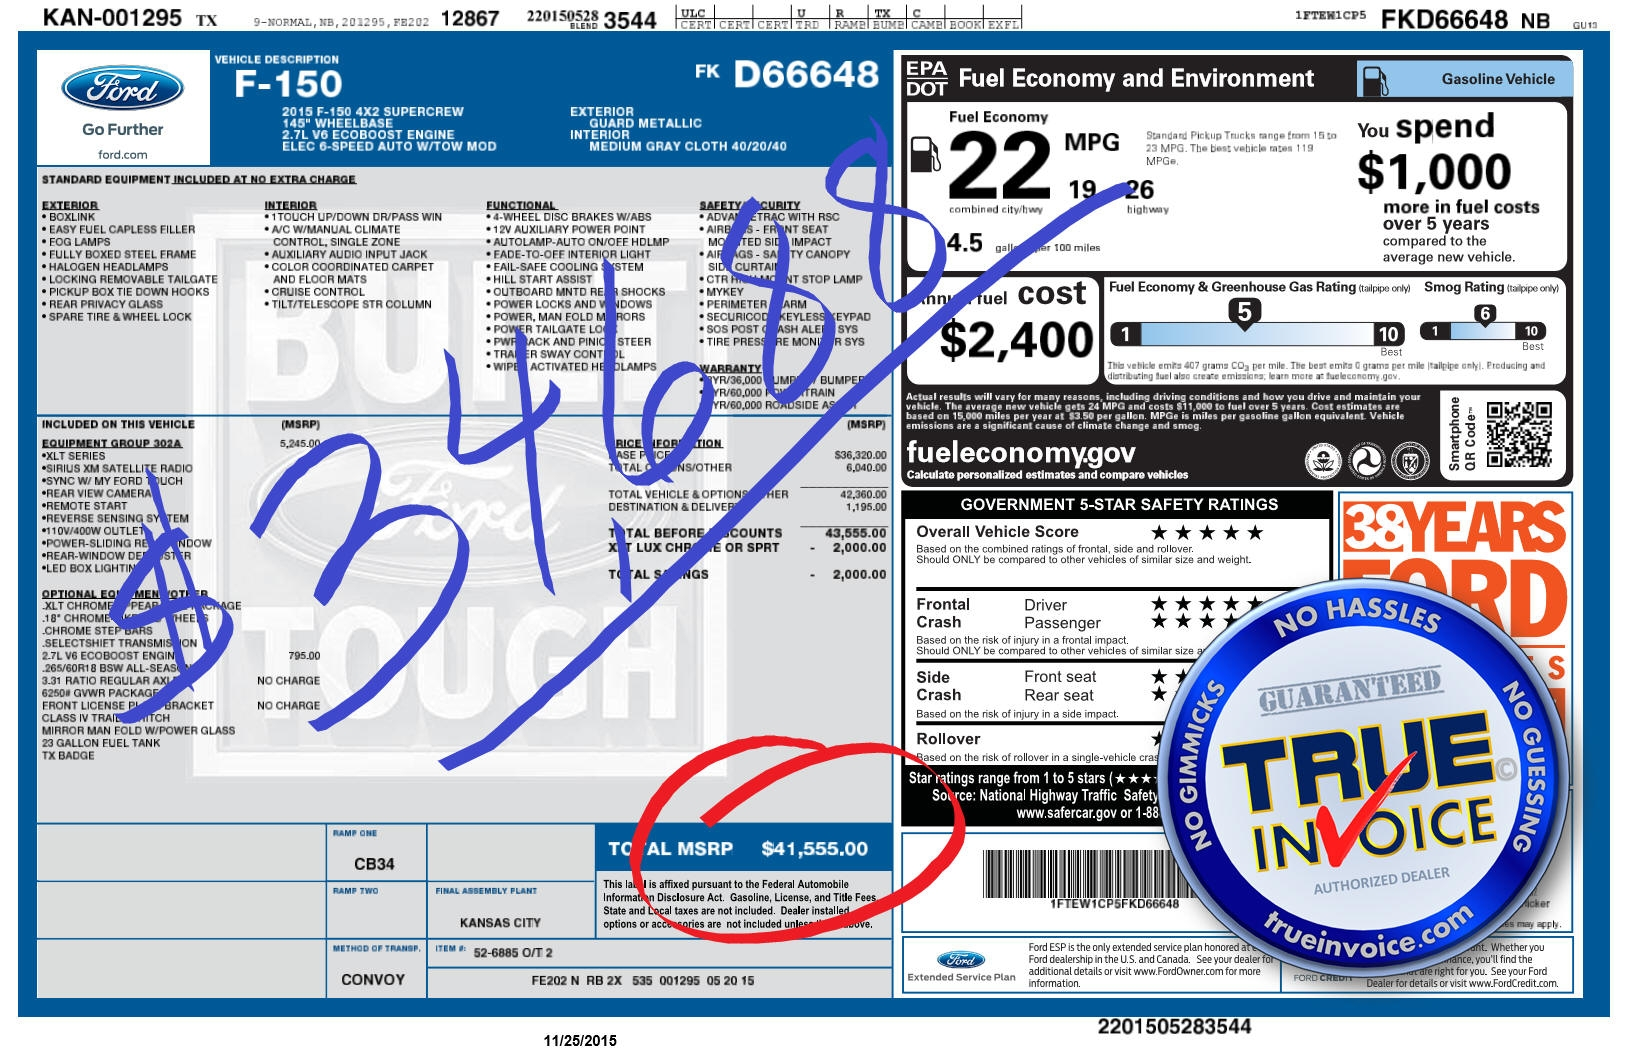 Ford Dealer Invoice Price Invoice Template Ideas - Ford edge invoice price